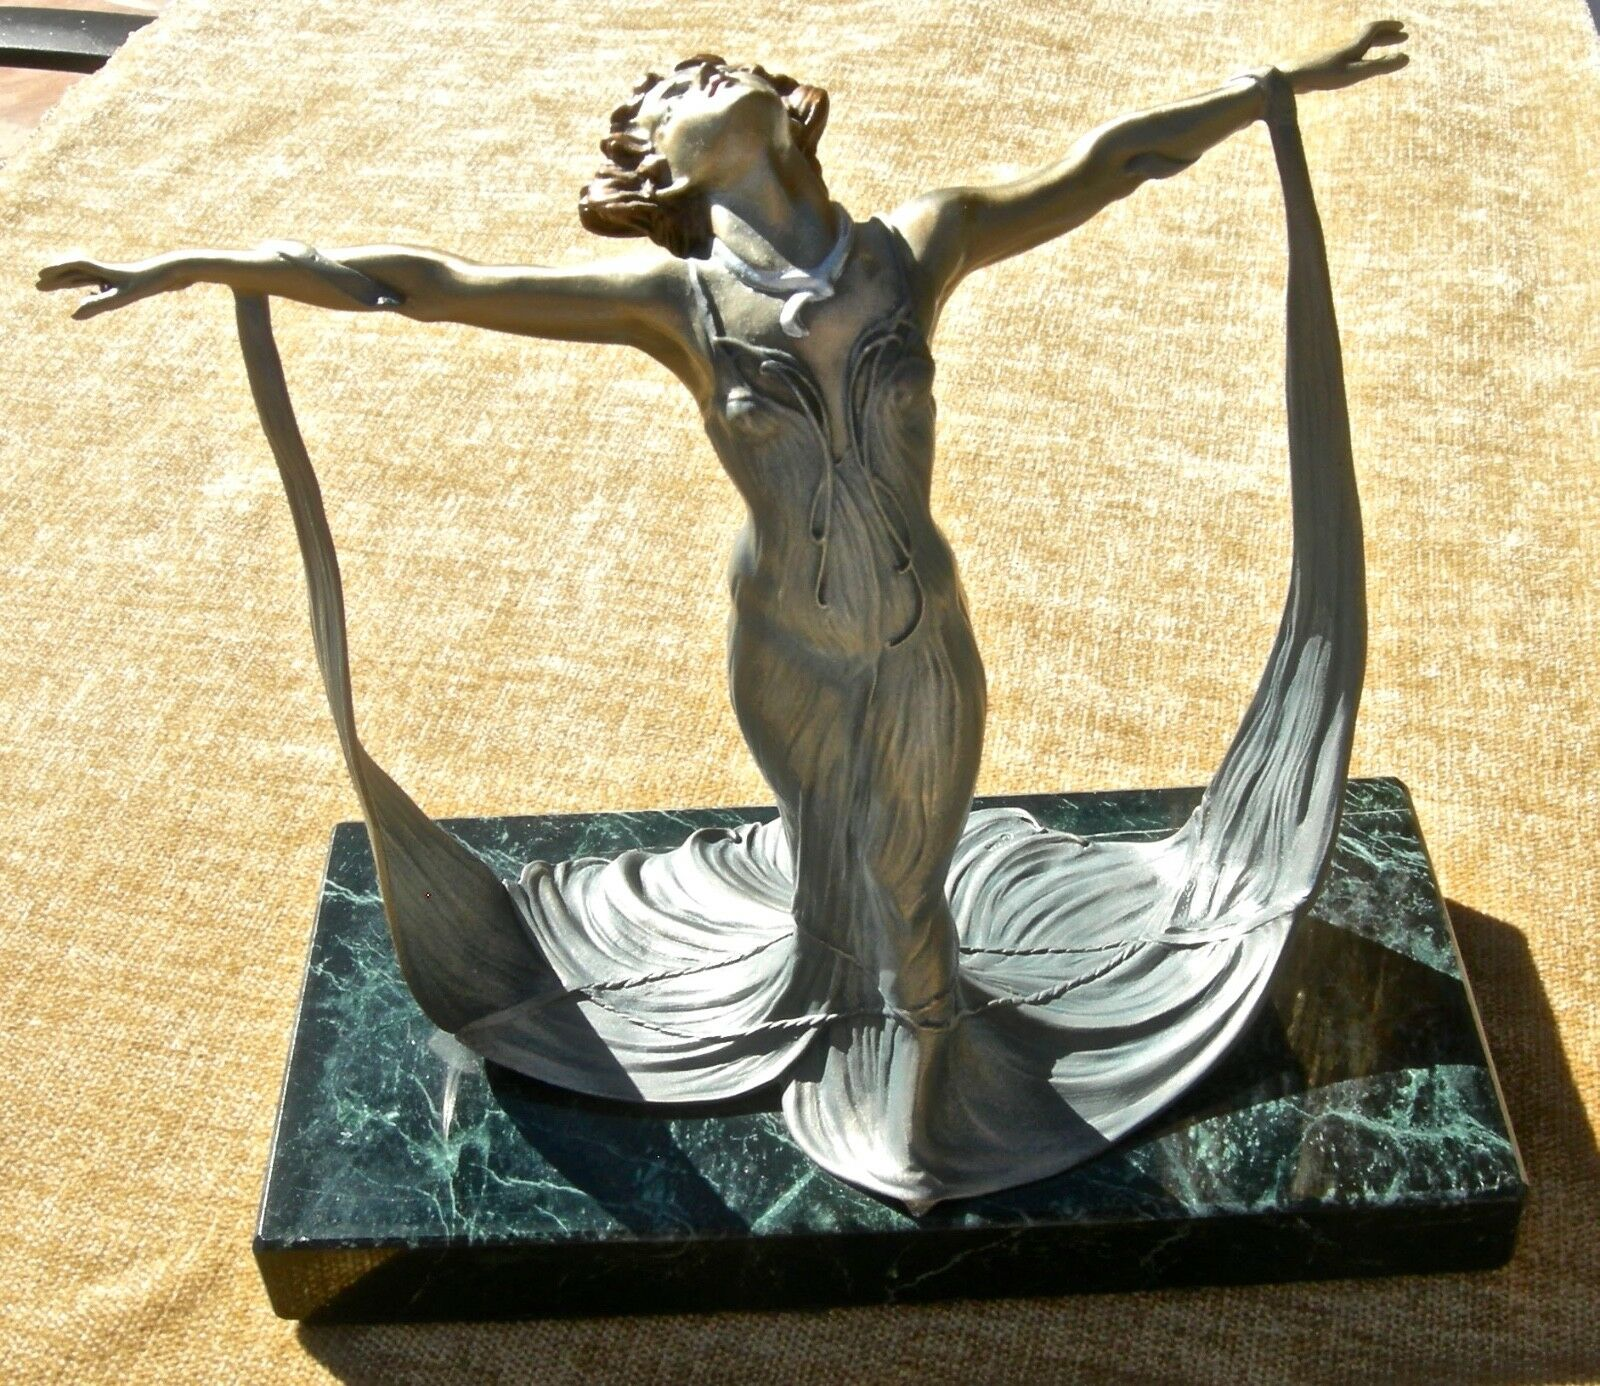 1987 CHILMARK STUDIO GISELLE LES BELLES DE PARIS AMY KANN PEWTER ART NOUV STATUE